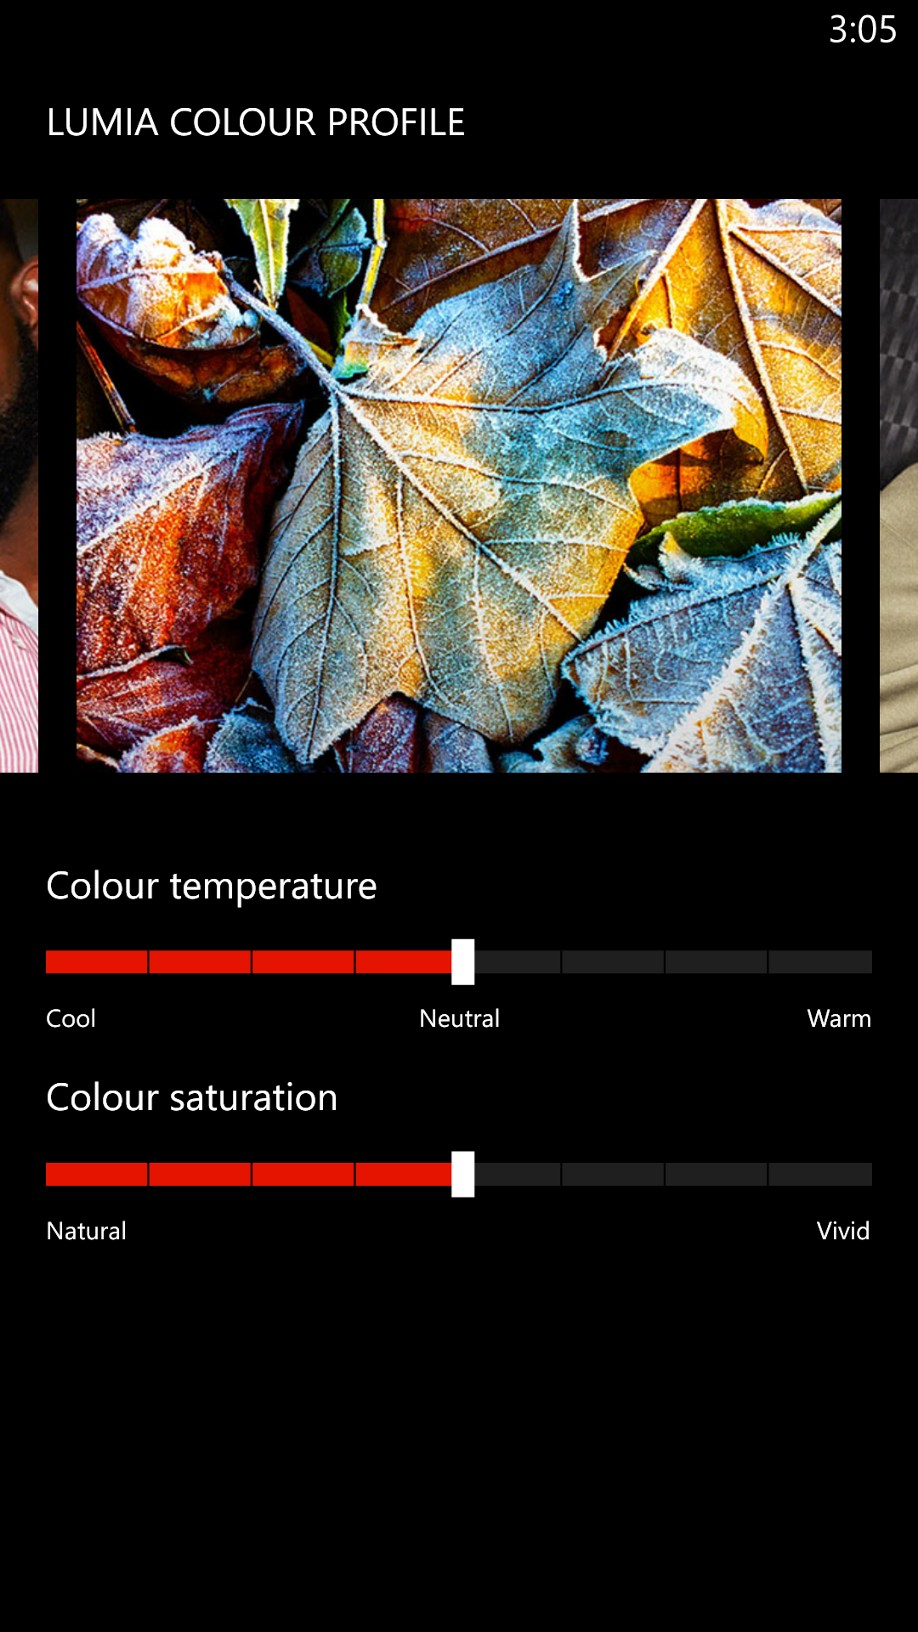 You adjust the color profile by changing the temperature and/or saturation.